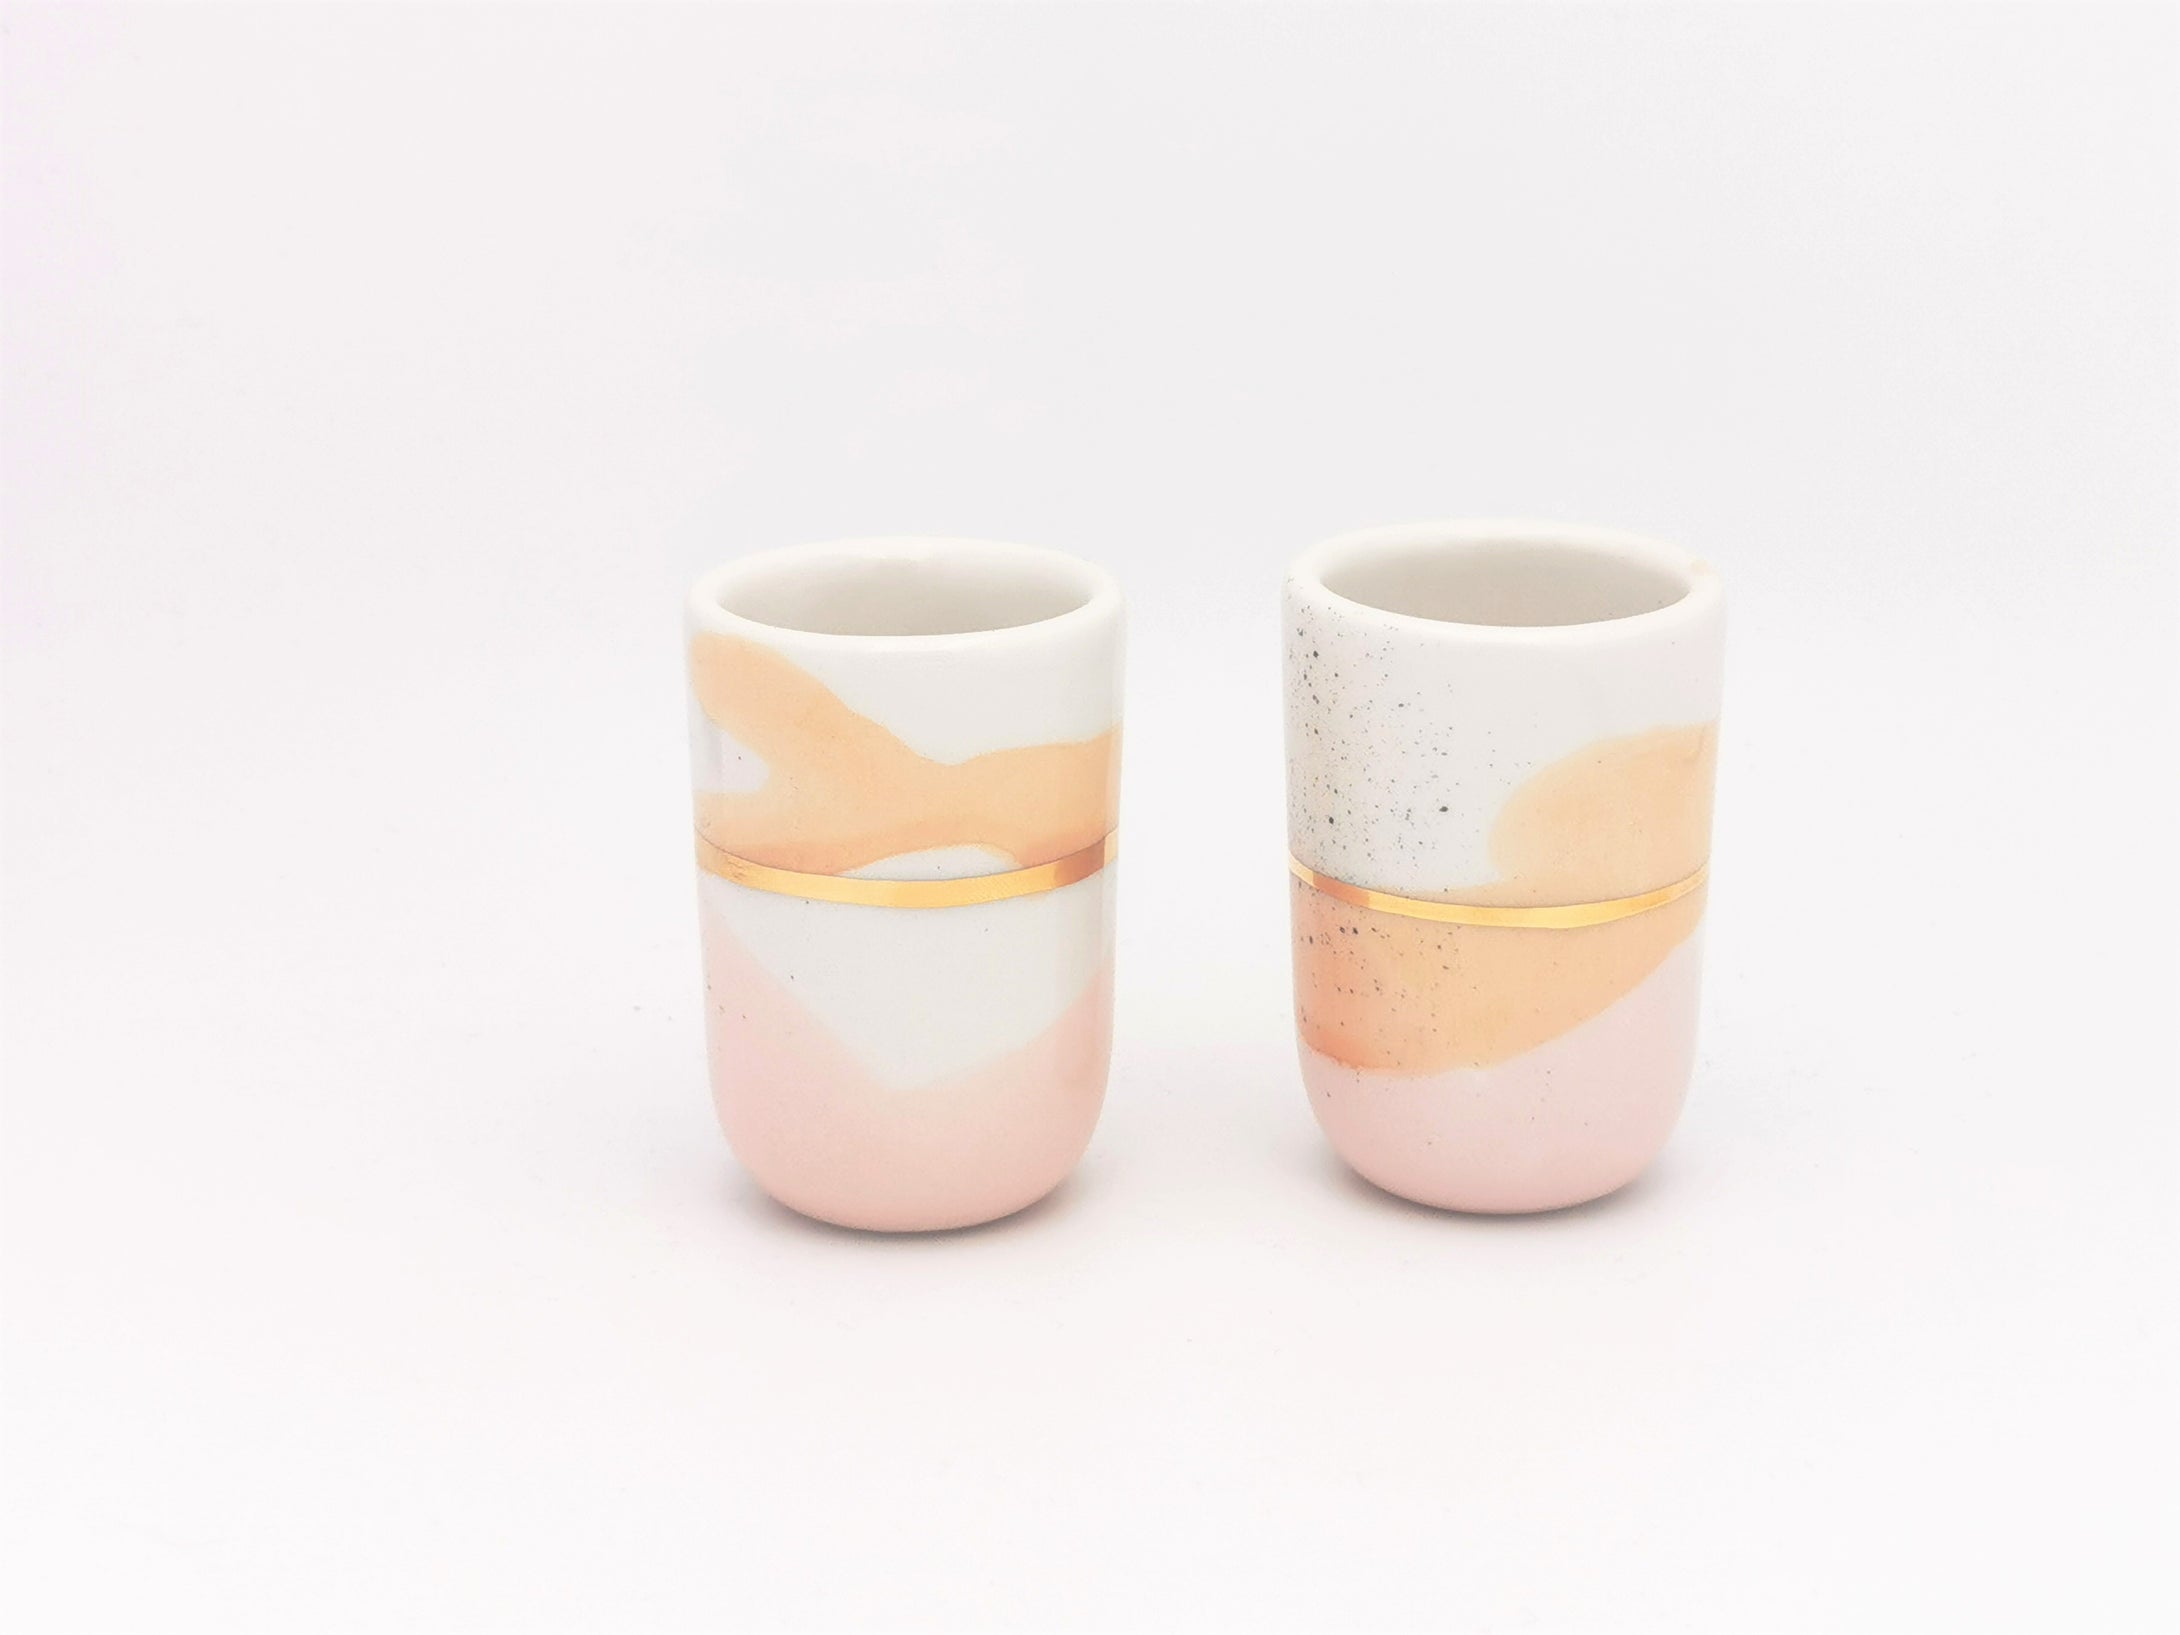 2er-Set in diversen Grössen, Apricot & Blush with Golden Lining - O I A  ceramics